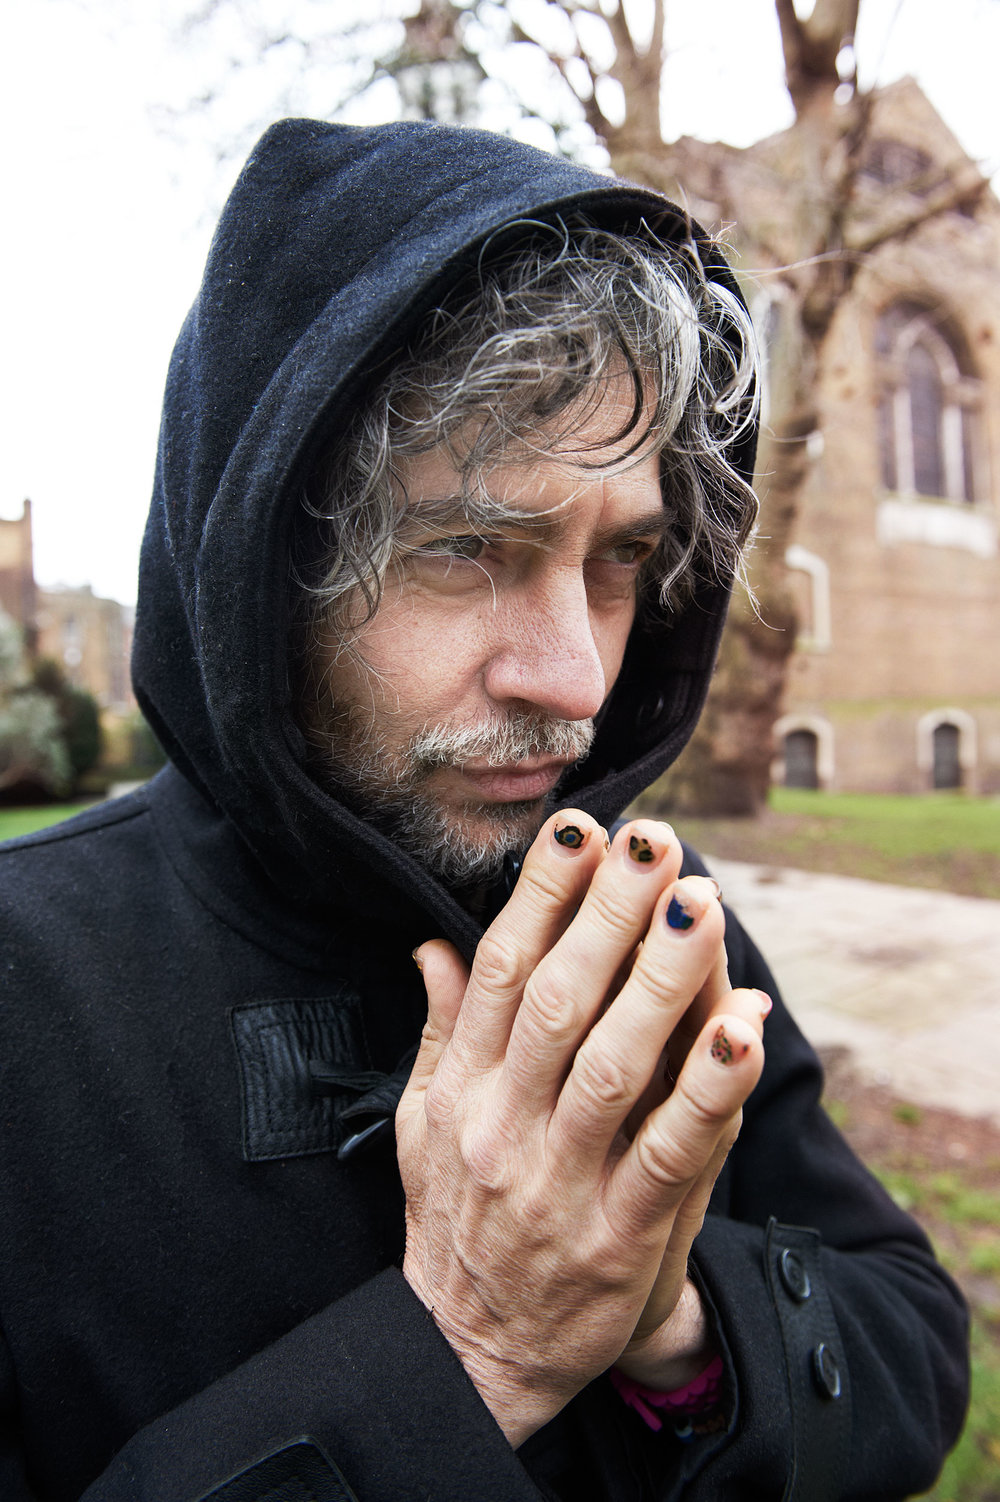 Wayne Coyne (Flaming Lips)